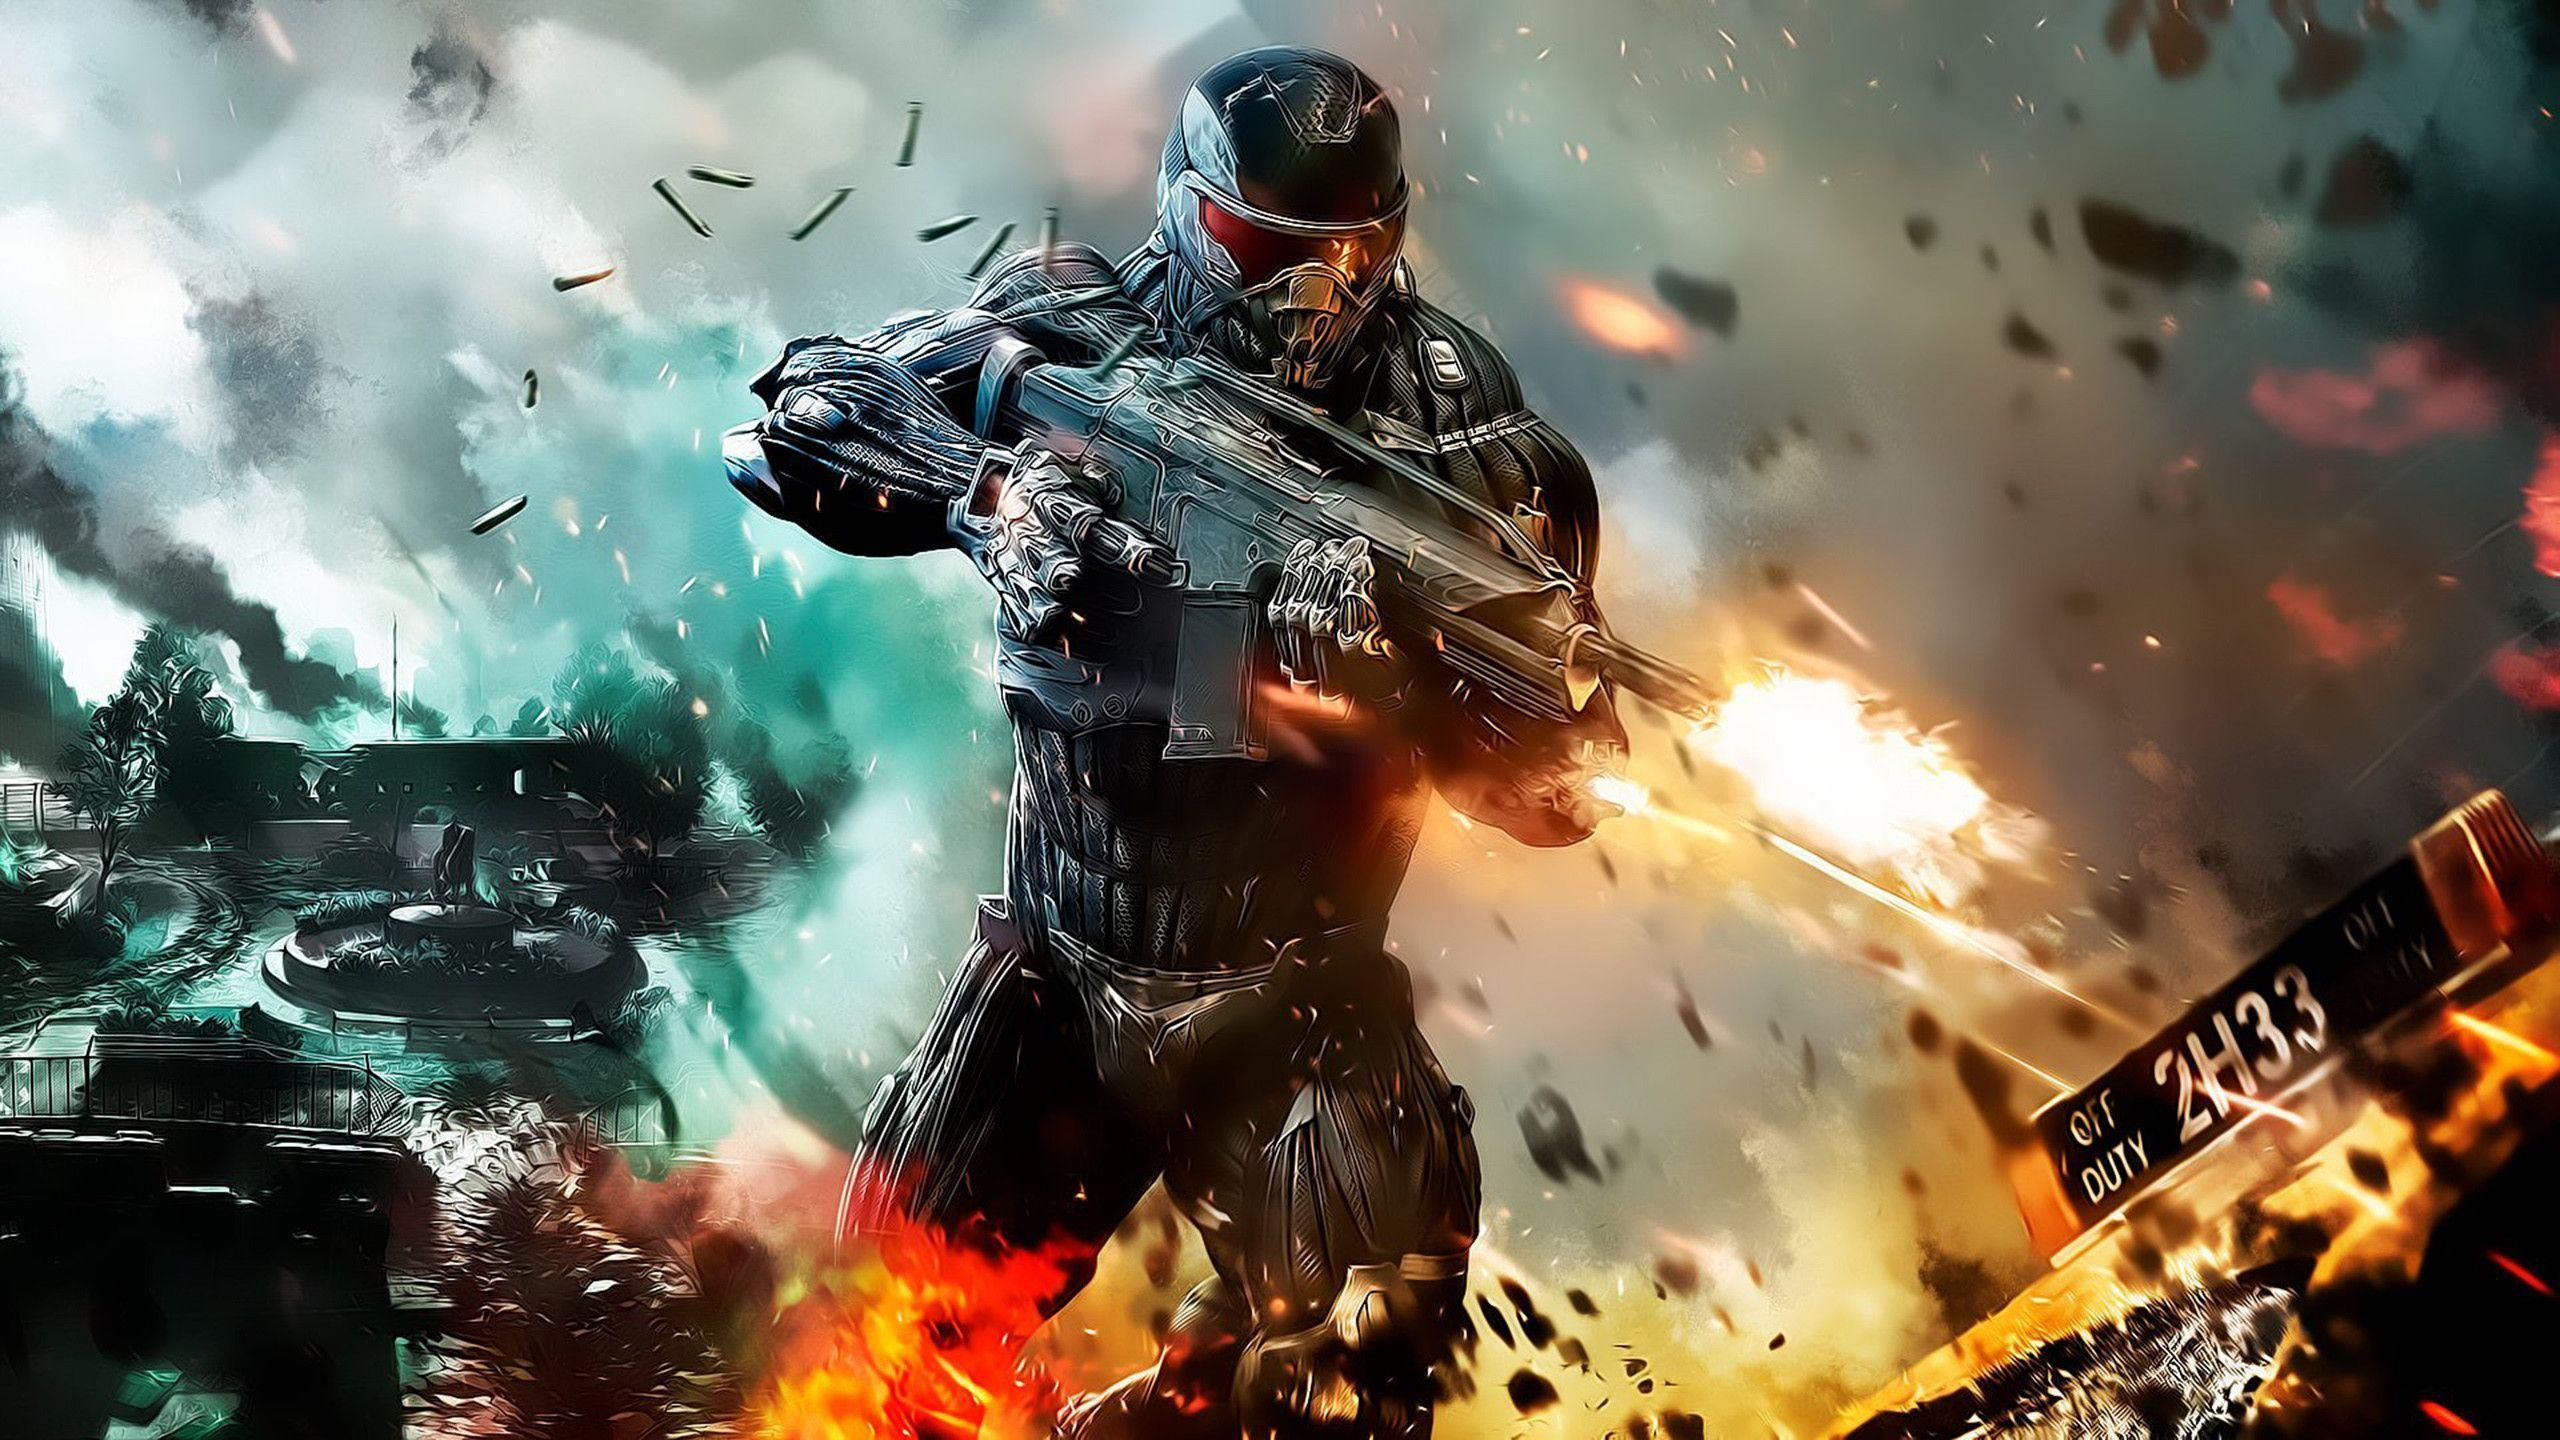 crysis 4 wallpaper hd - photo #36